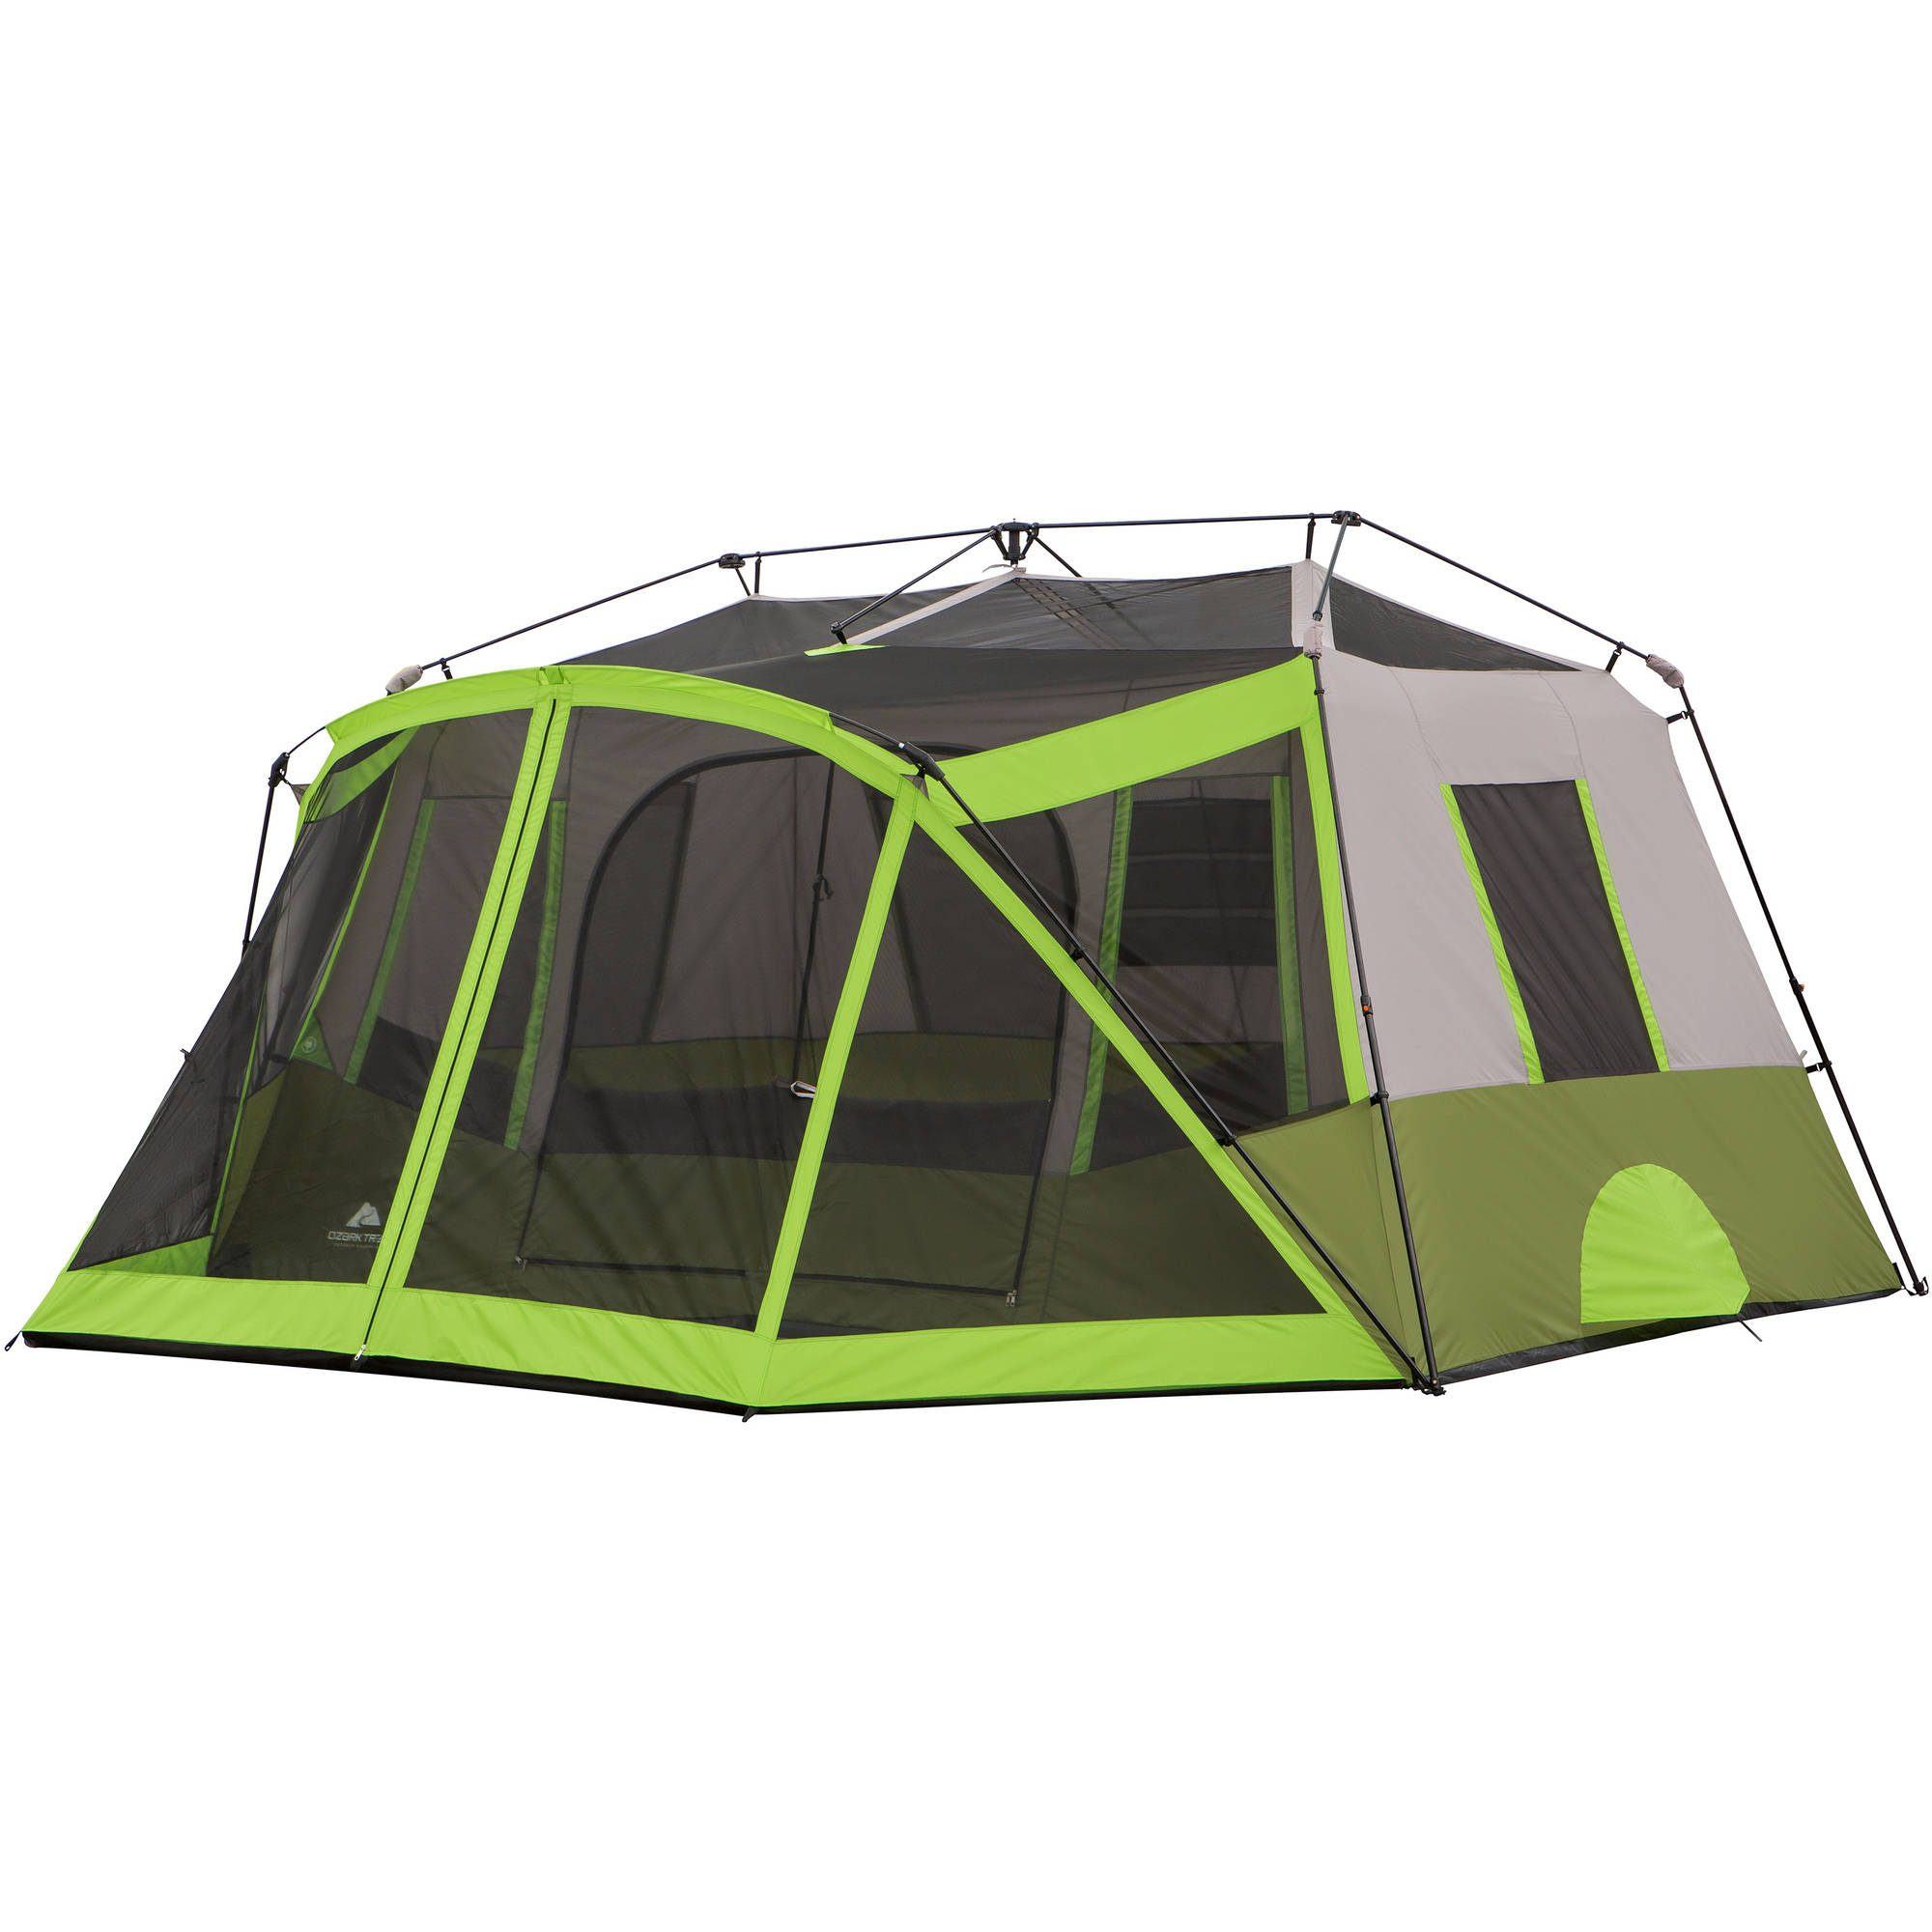 Ozark Trail 9 Person 2 Room Instant Cabin Tent with Screen Room Image 2 of 11  sc 1 st  Walmart.com & Ozark Trail 9 Person 2 Room Instant Cabin Tent with Screen Room ...